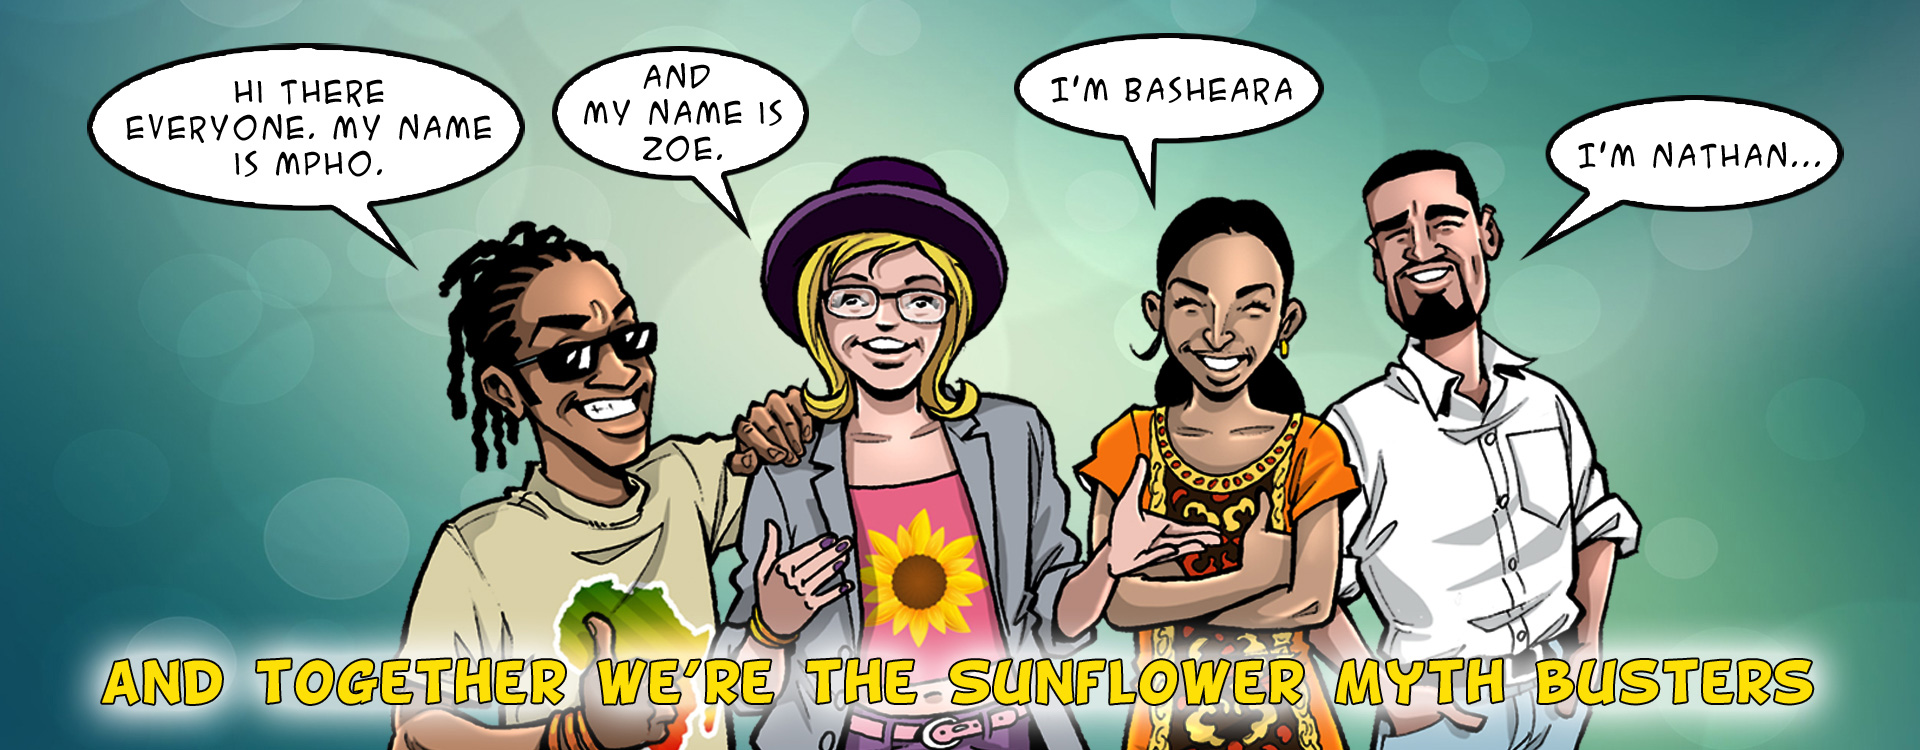 The-Sunflower-Fund-FP-Slide-01